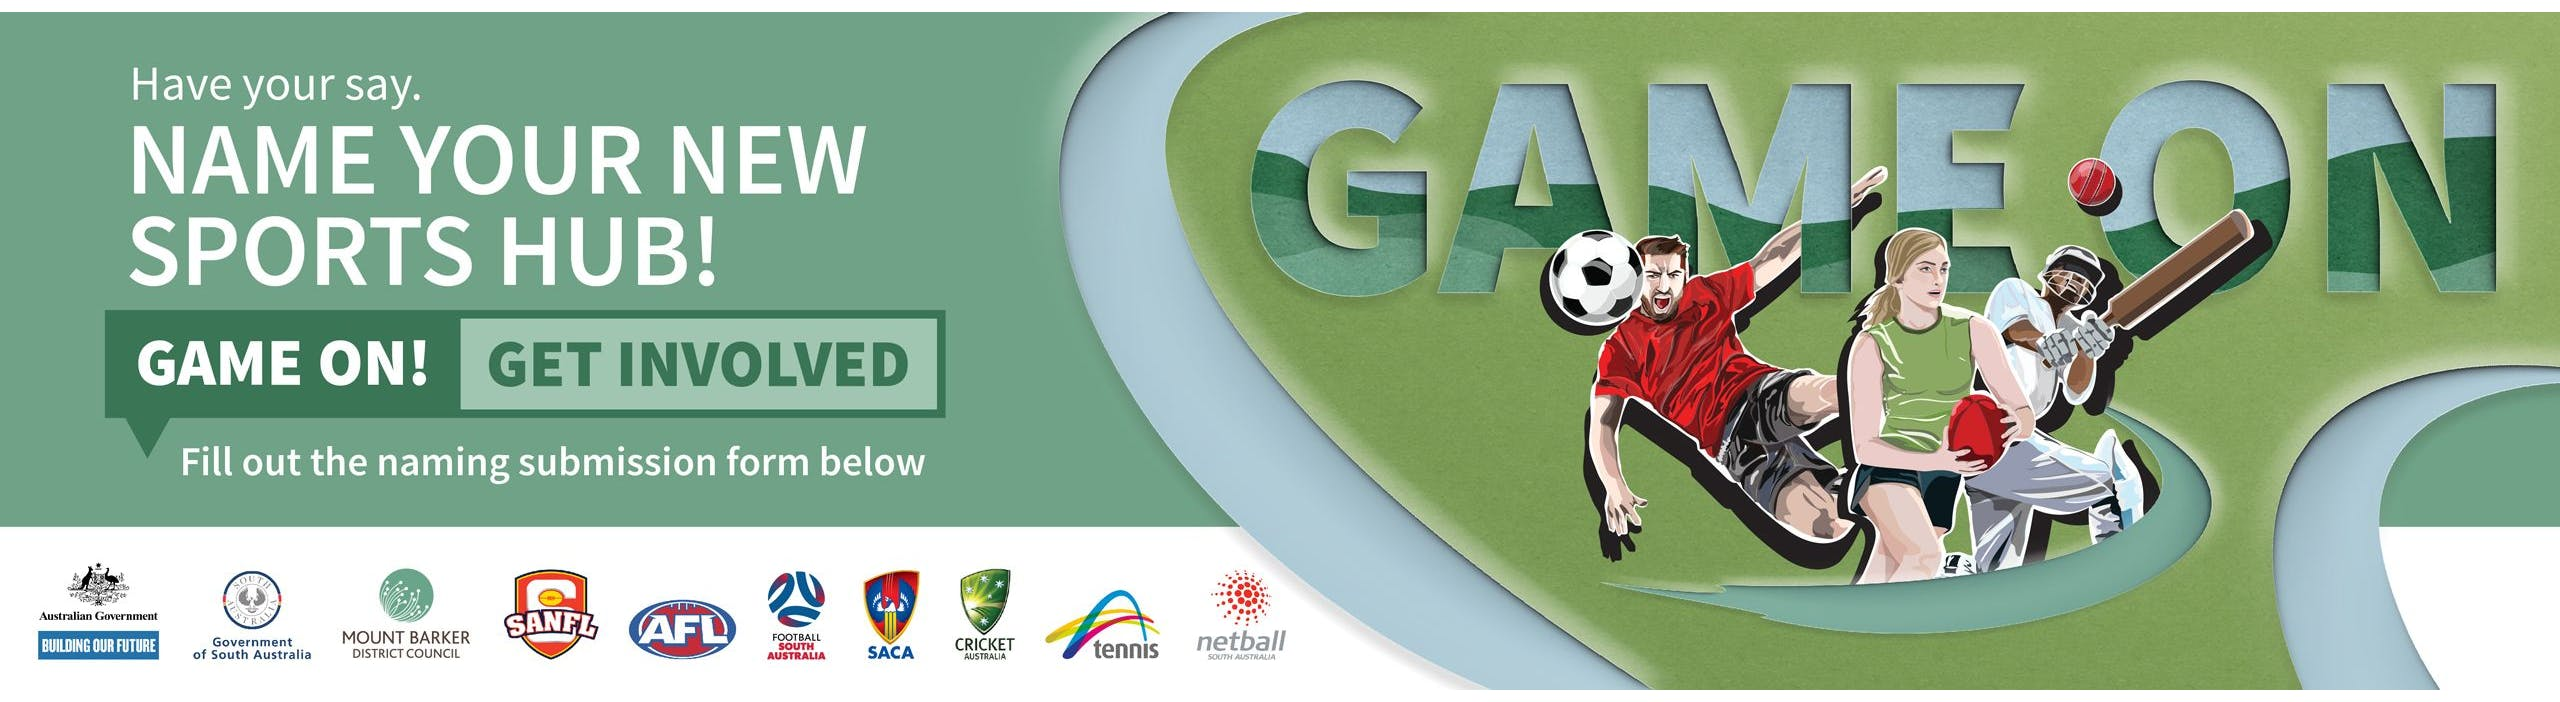 Game on! Name your new regional sports hub